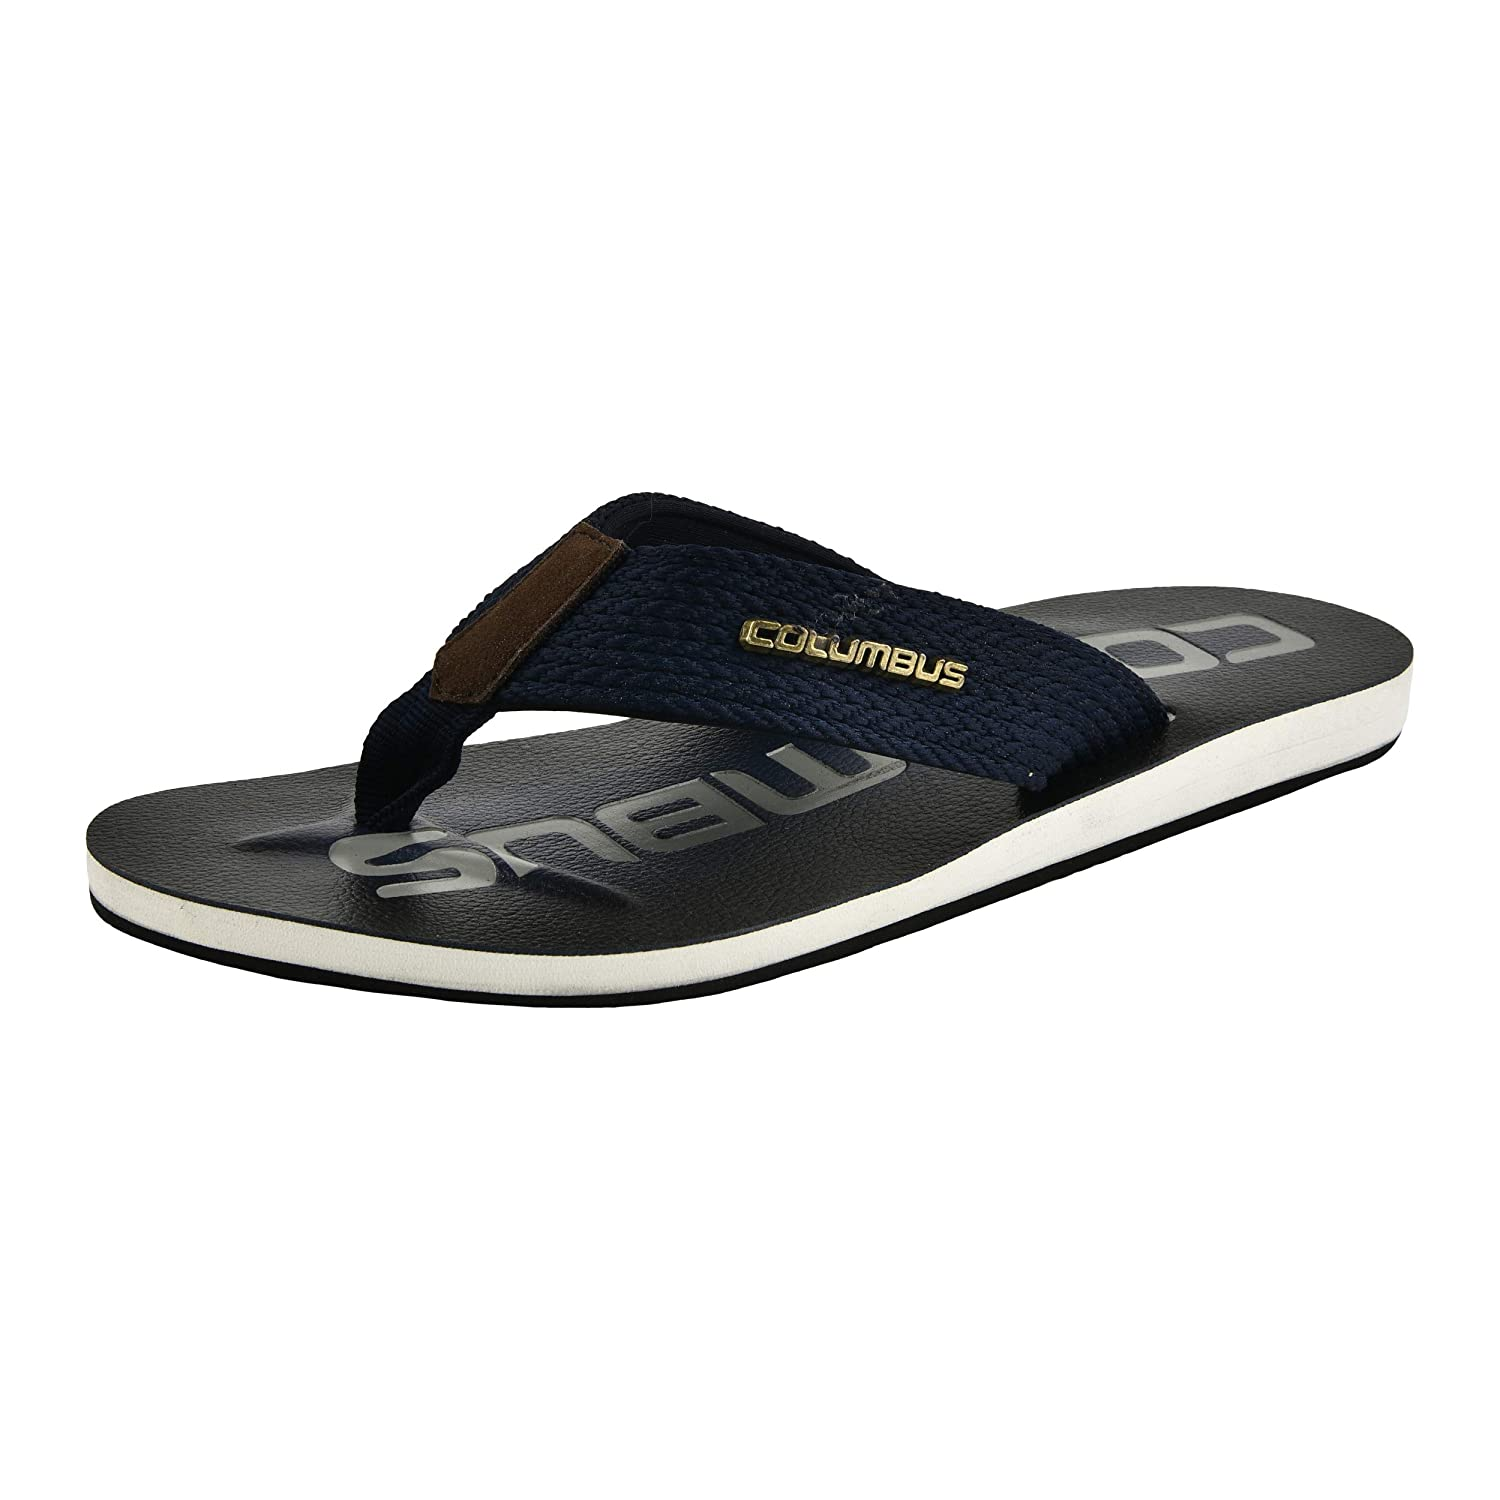 6a66fe14e Columbus Norbi Navy Blue-White Flip-Flops for Men  Buy Online at Low Prices  in India - Amazon.in